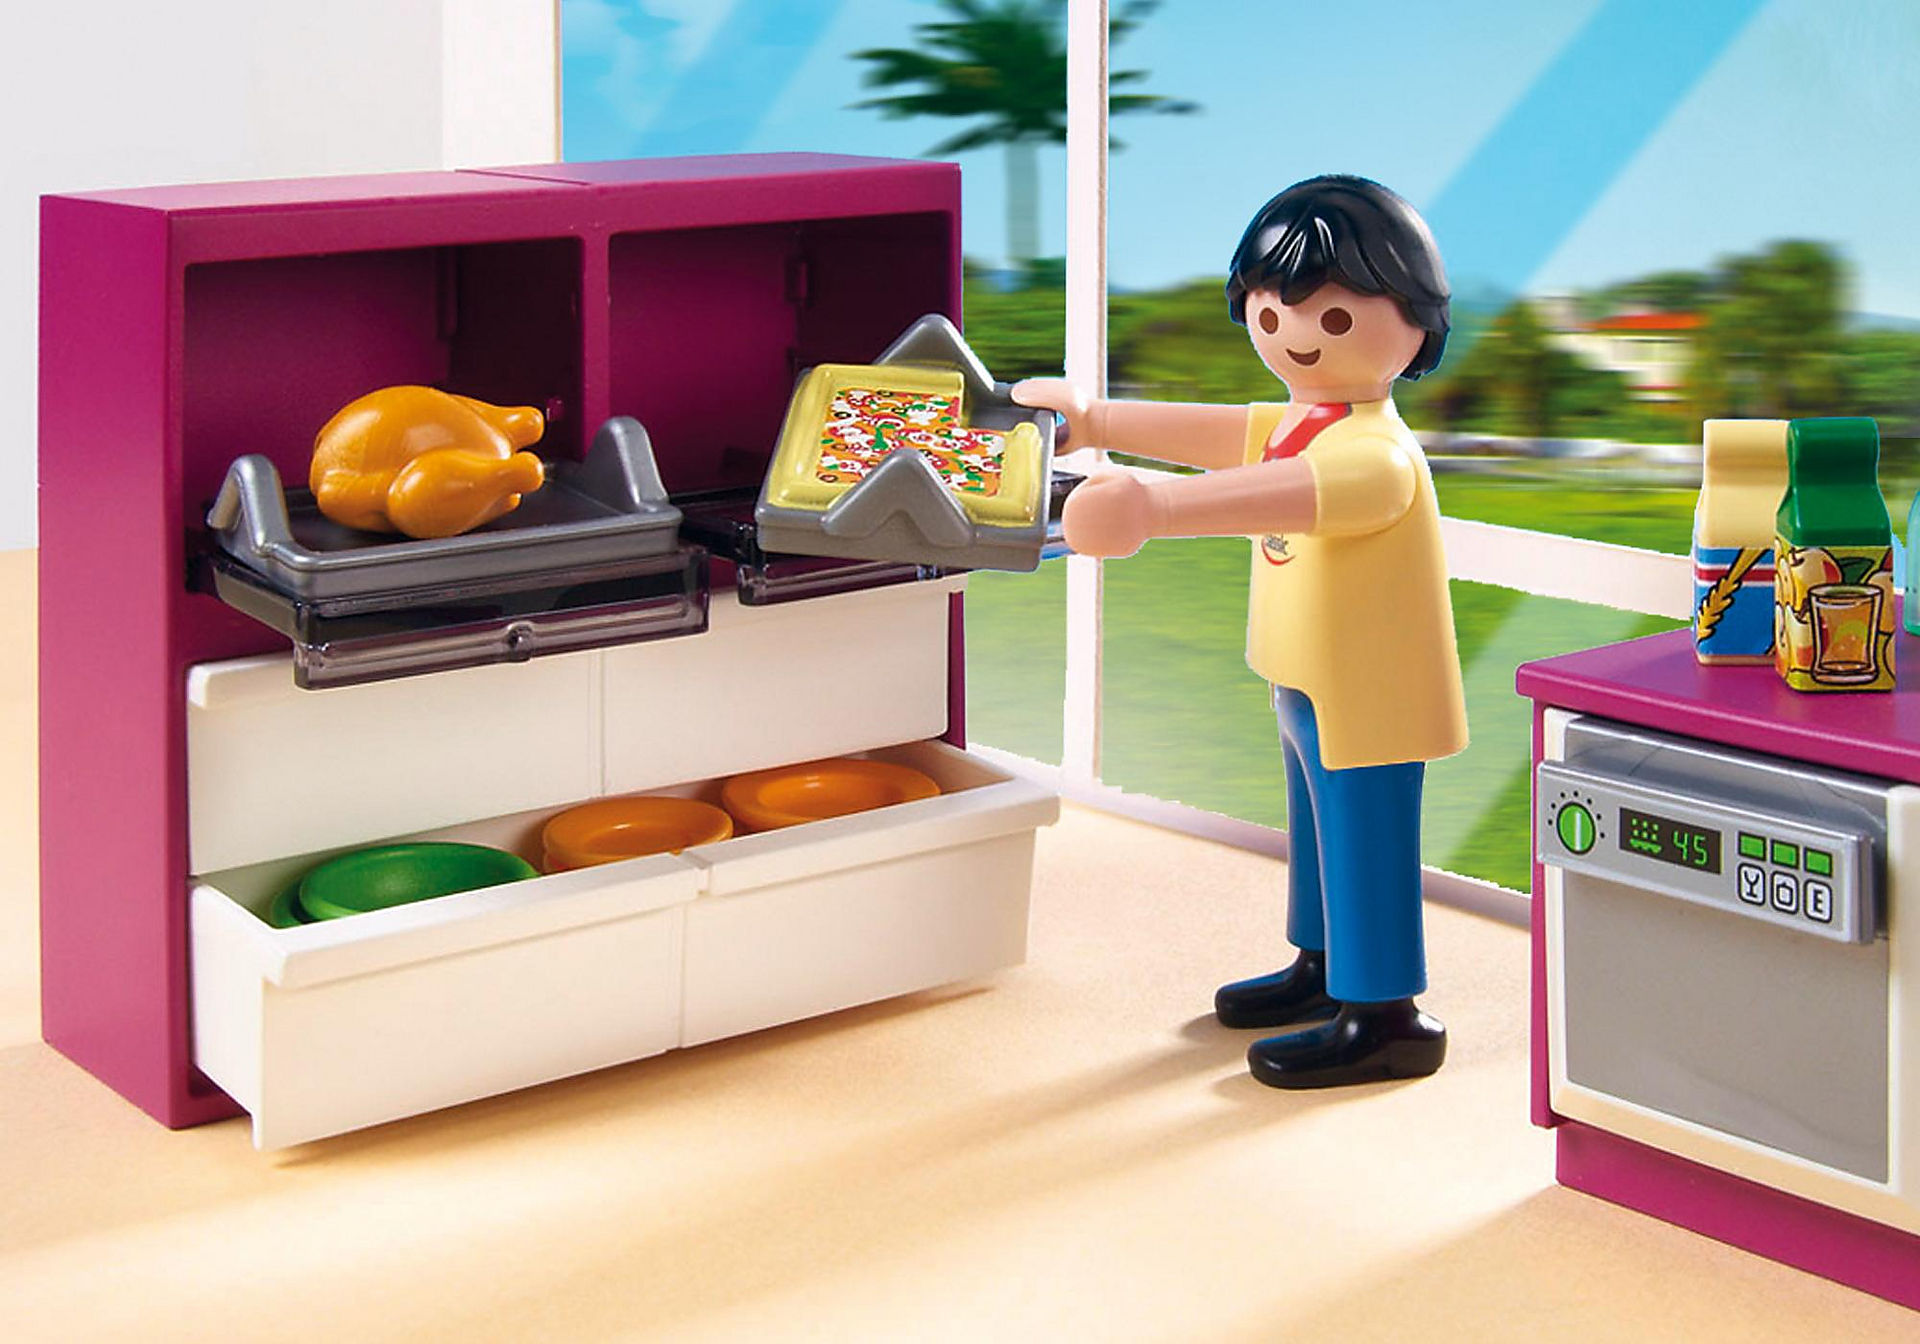 http://media.playmobil.com/i/playmobil/5582_product_extra3/Modern Designer Kitchen